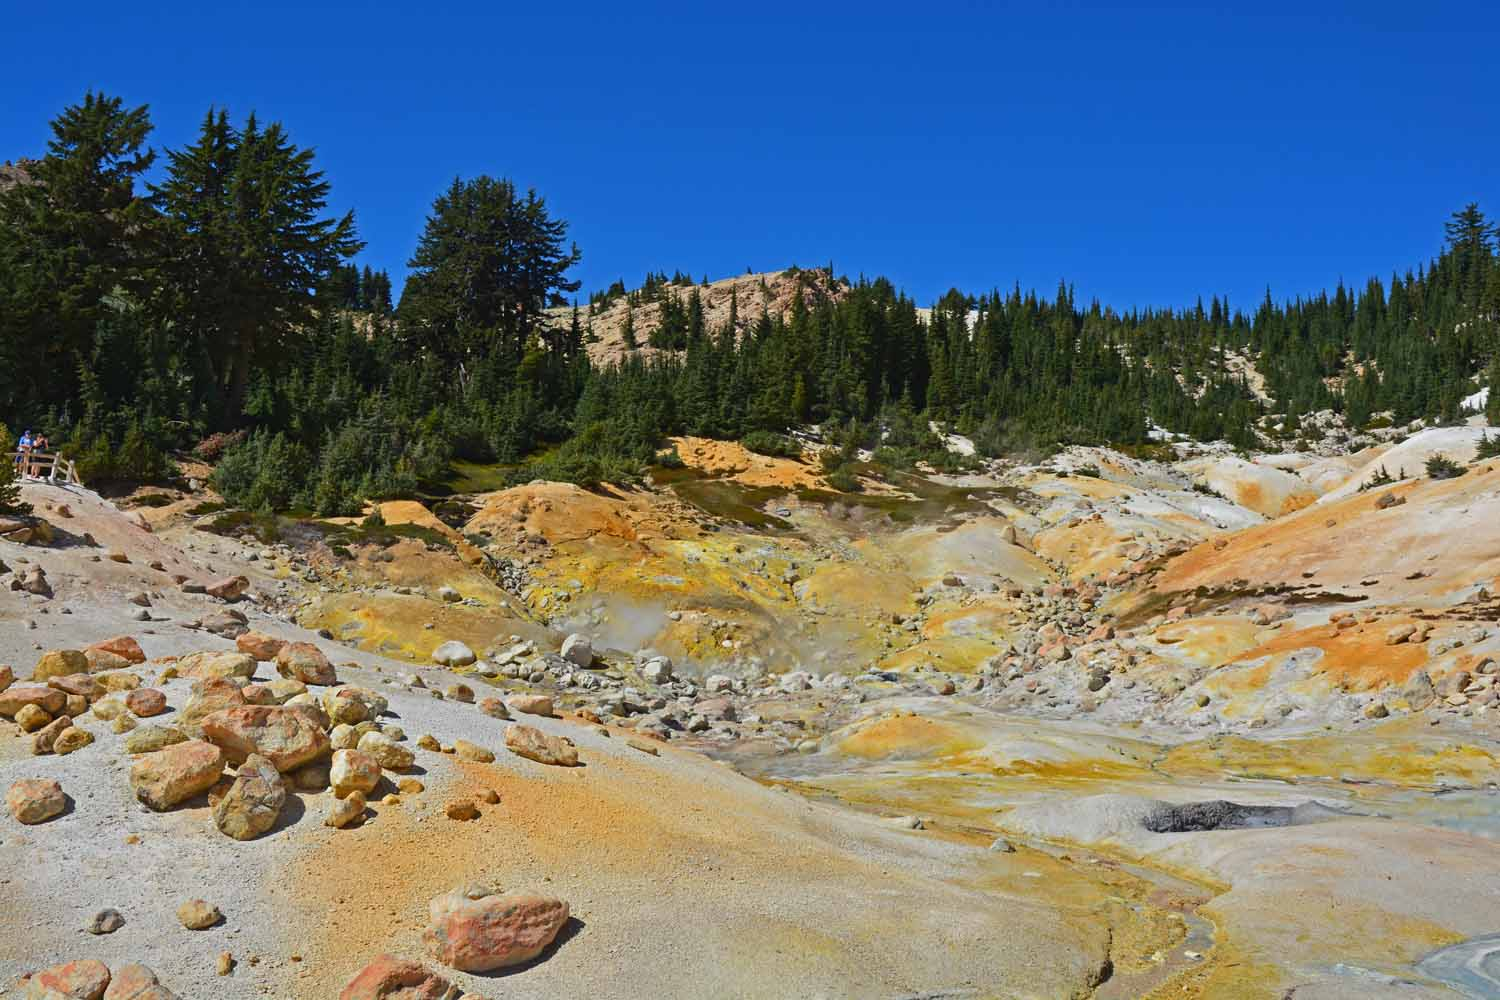 Yes, you can smell the sulfur...